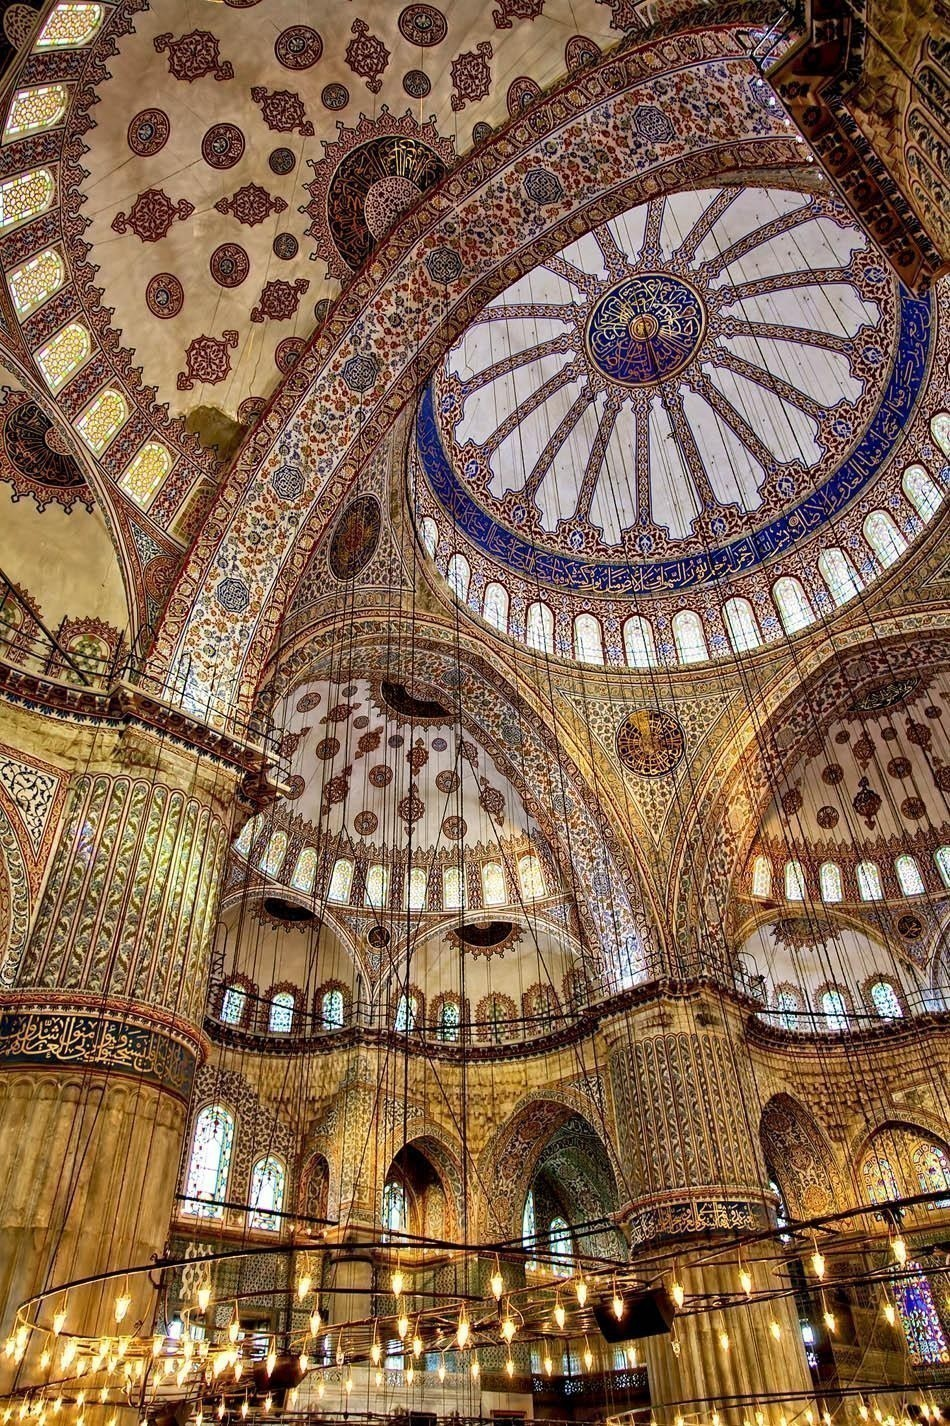 Image shot inside the grand Blue Mosque in Istanbul, Turkey | Turkey Travel Guide